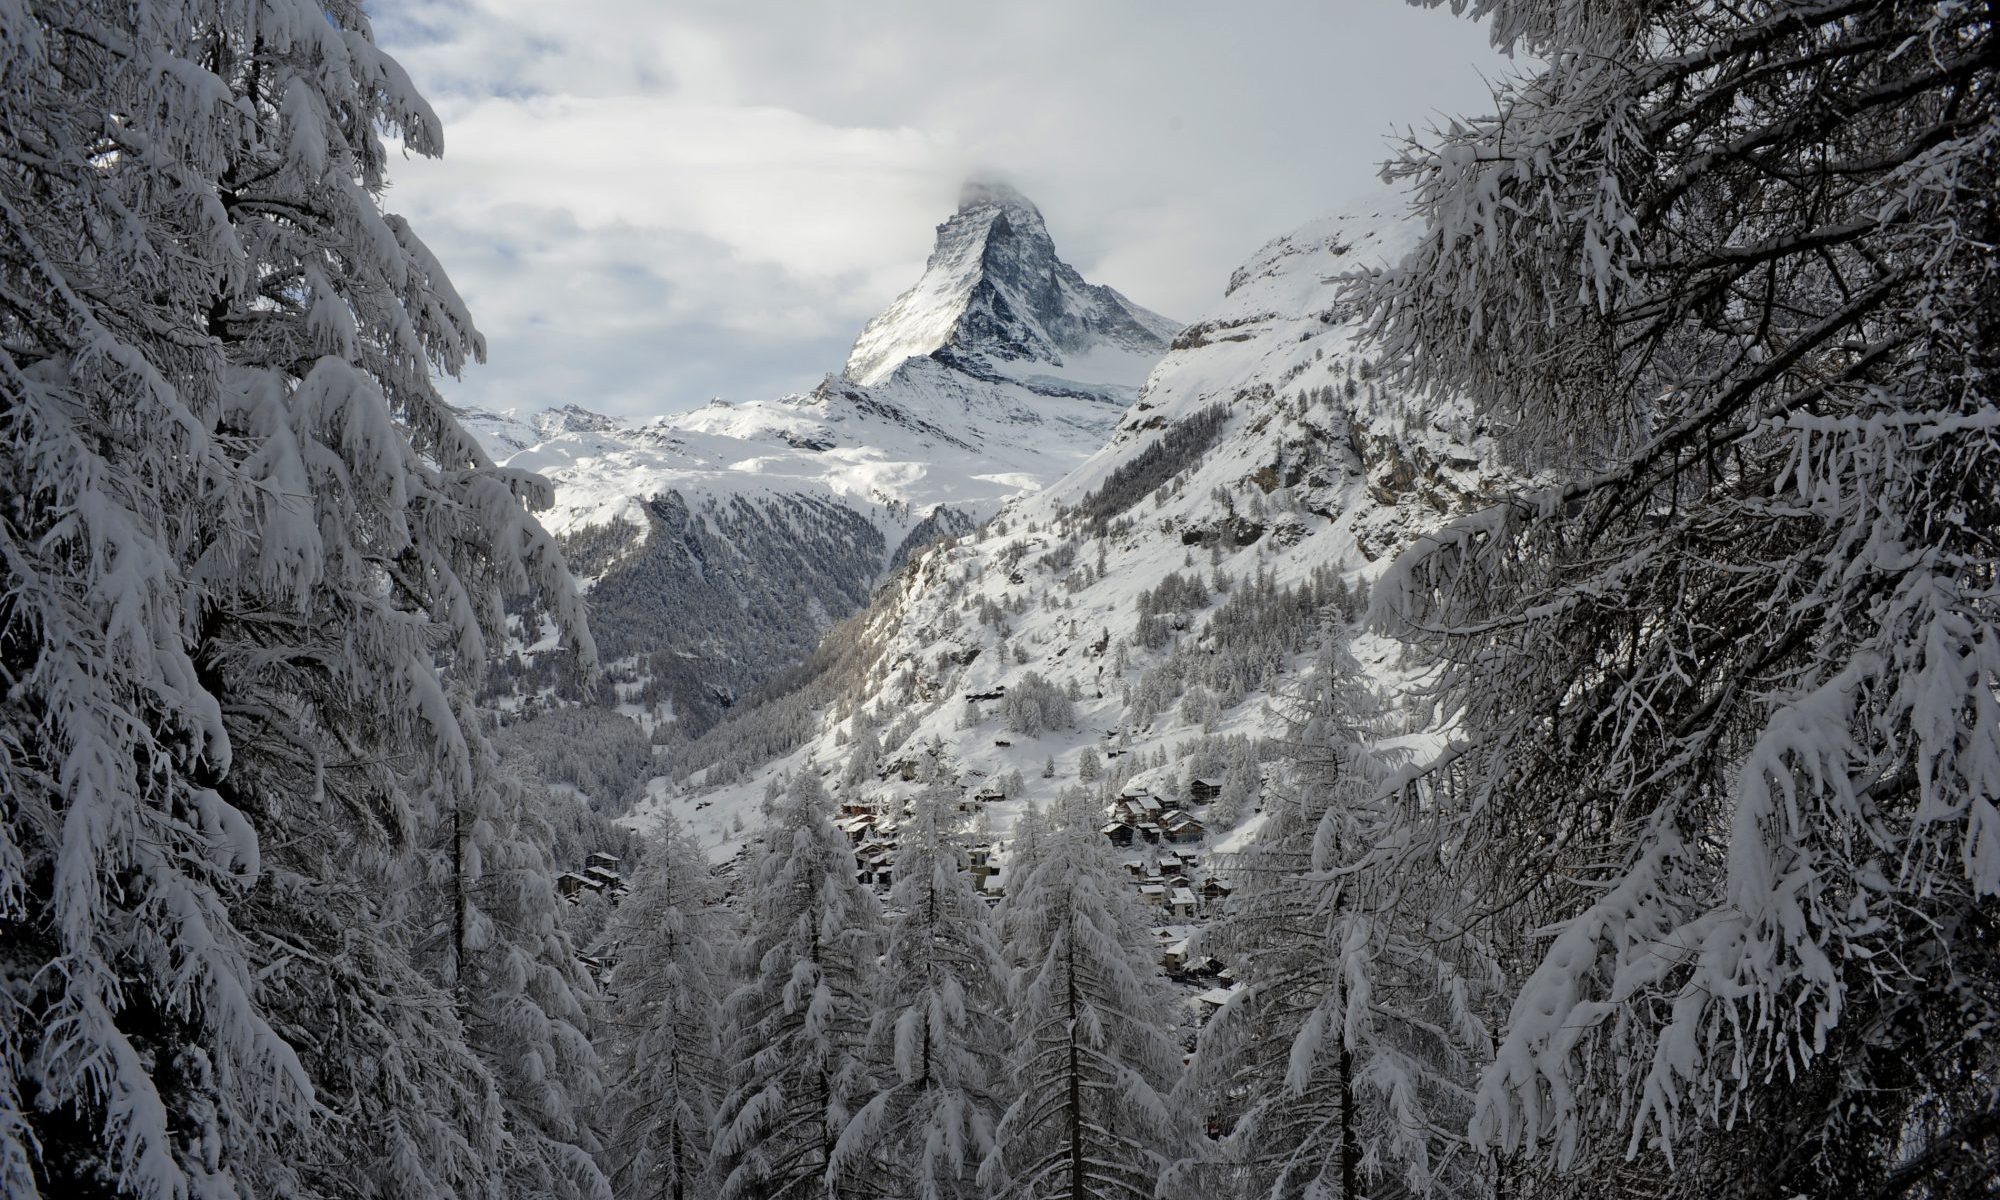 Matterhorn, the classic view from picture-perfect Zermatt. Photo: Kurt Müller. Zermatt to try recycled plastic 'green' road re-surfacing project.